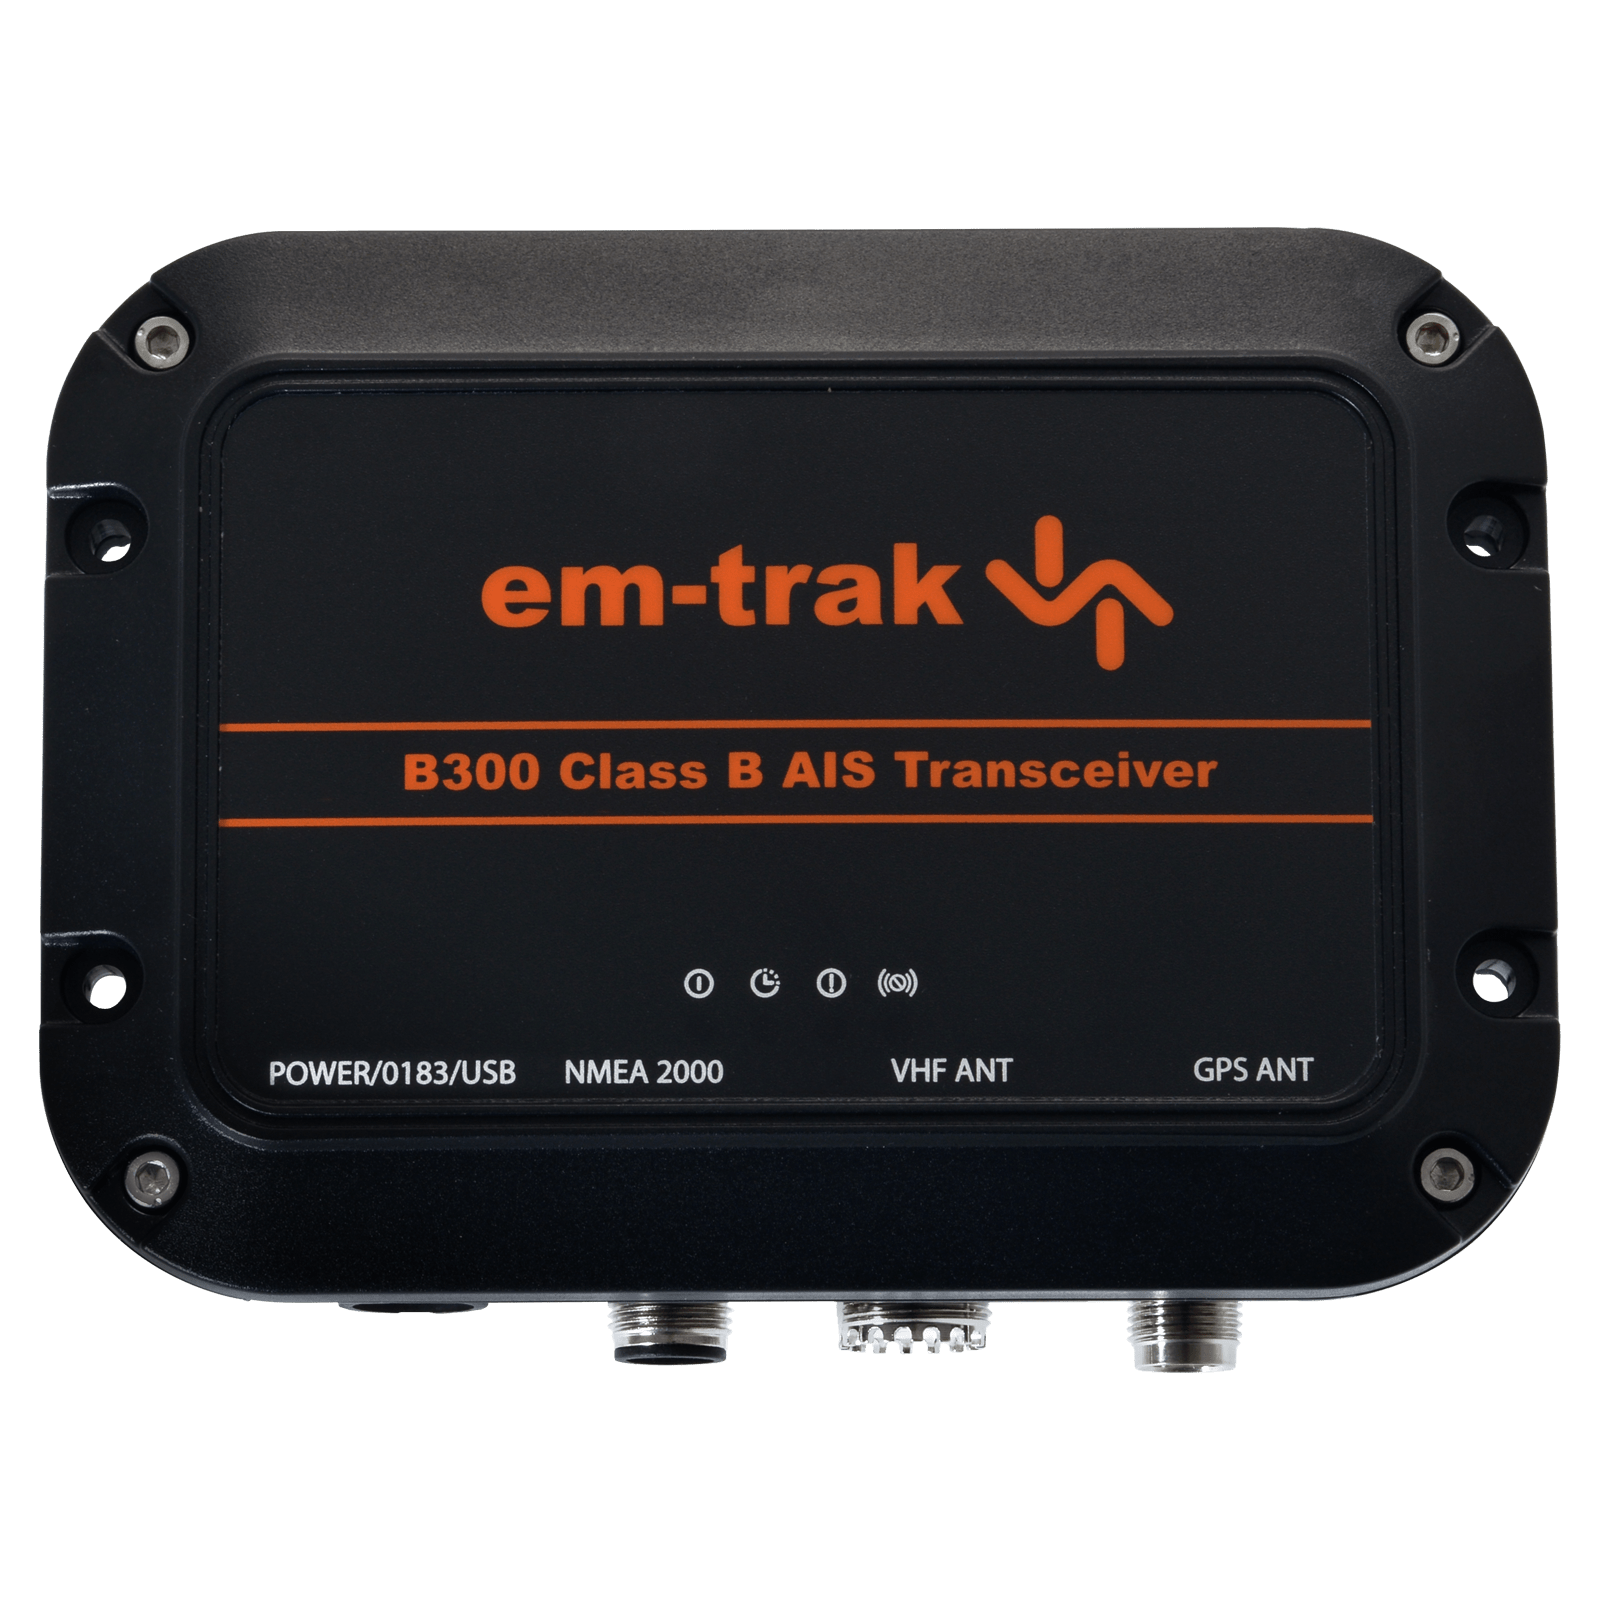 The em-trak B300 is a small, ruggedized AIS Class B that is ideal for small commercial and leisure boats of any size looking for a robust and reliable AIS Class B that seamlessly connects to any MFD, display system or APP.